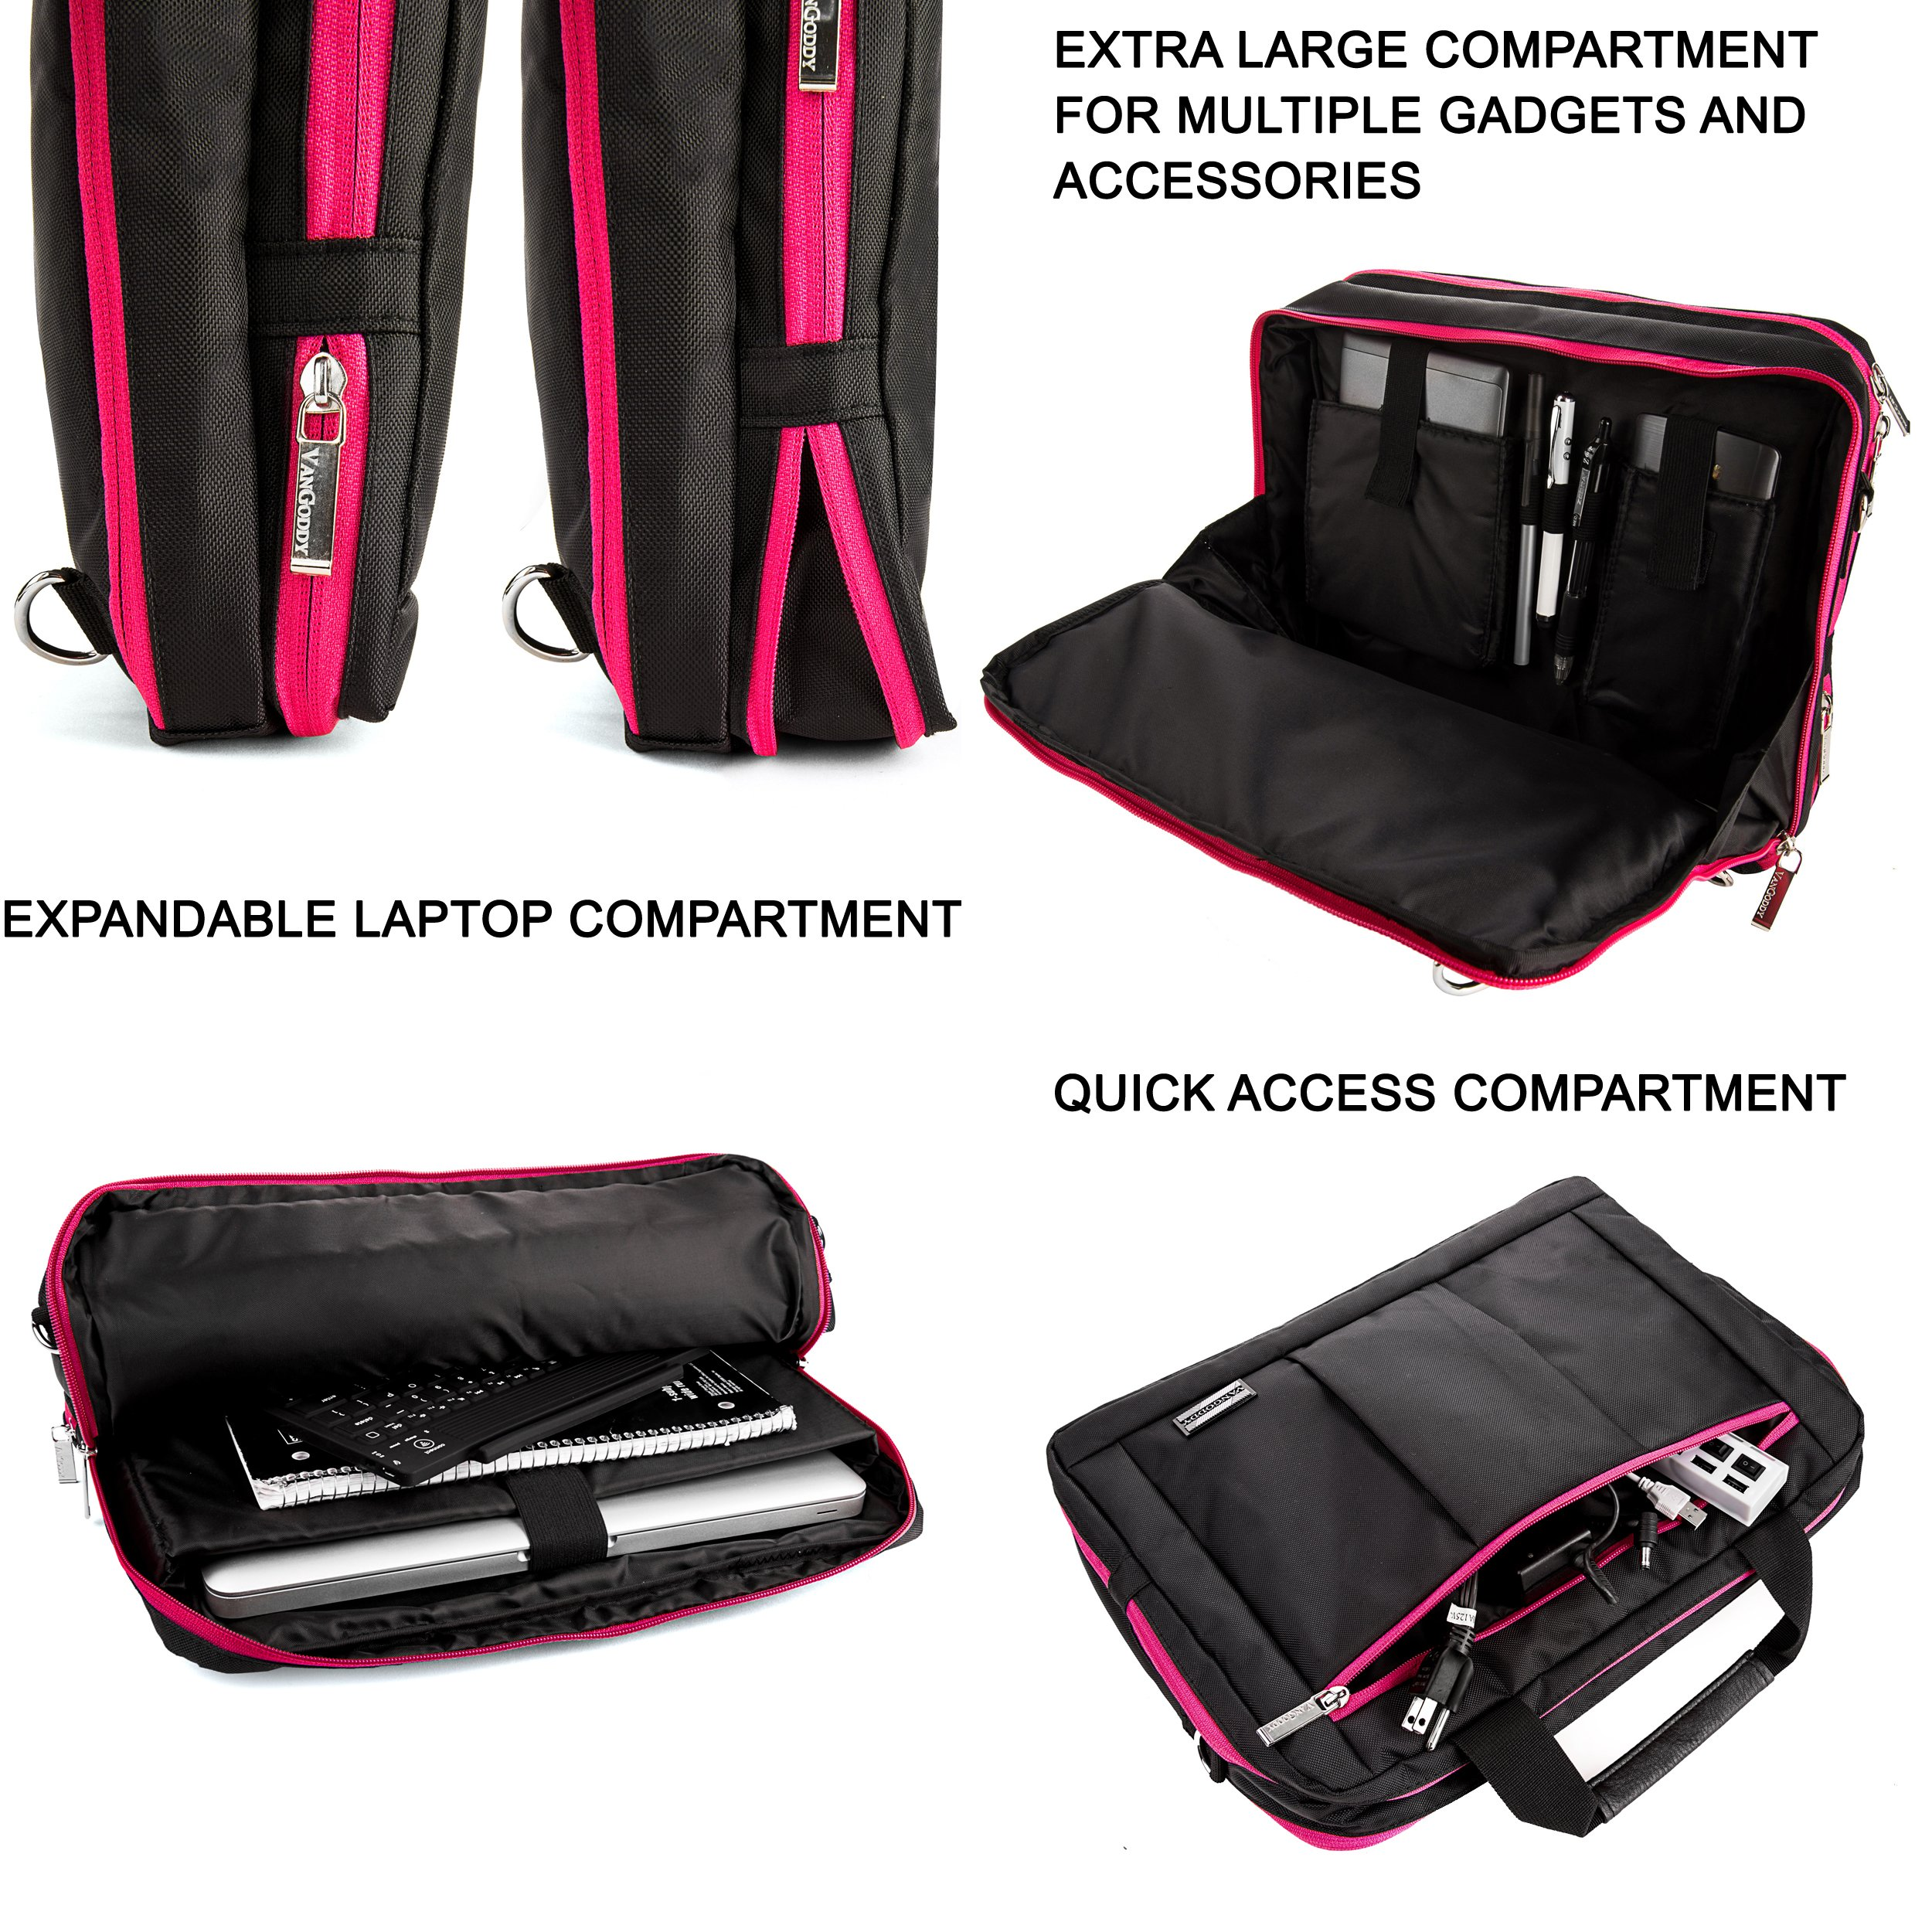 Executive Travel Carrying Bag, Messenger Bag & Backpack For Samsung Galaxy Tab PRO / Galaxy Note PRO 12.2'' Tablet + Pink Bluetooth Suction Speaker by Vangoddy (Image #5)